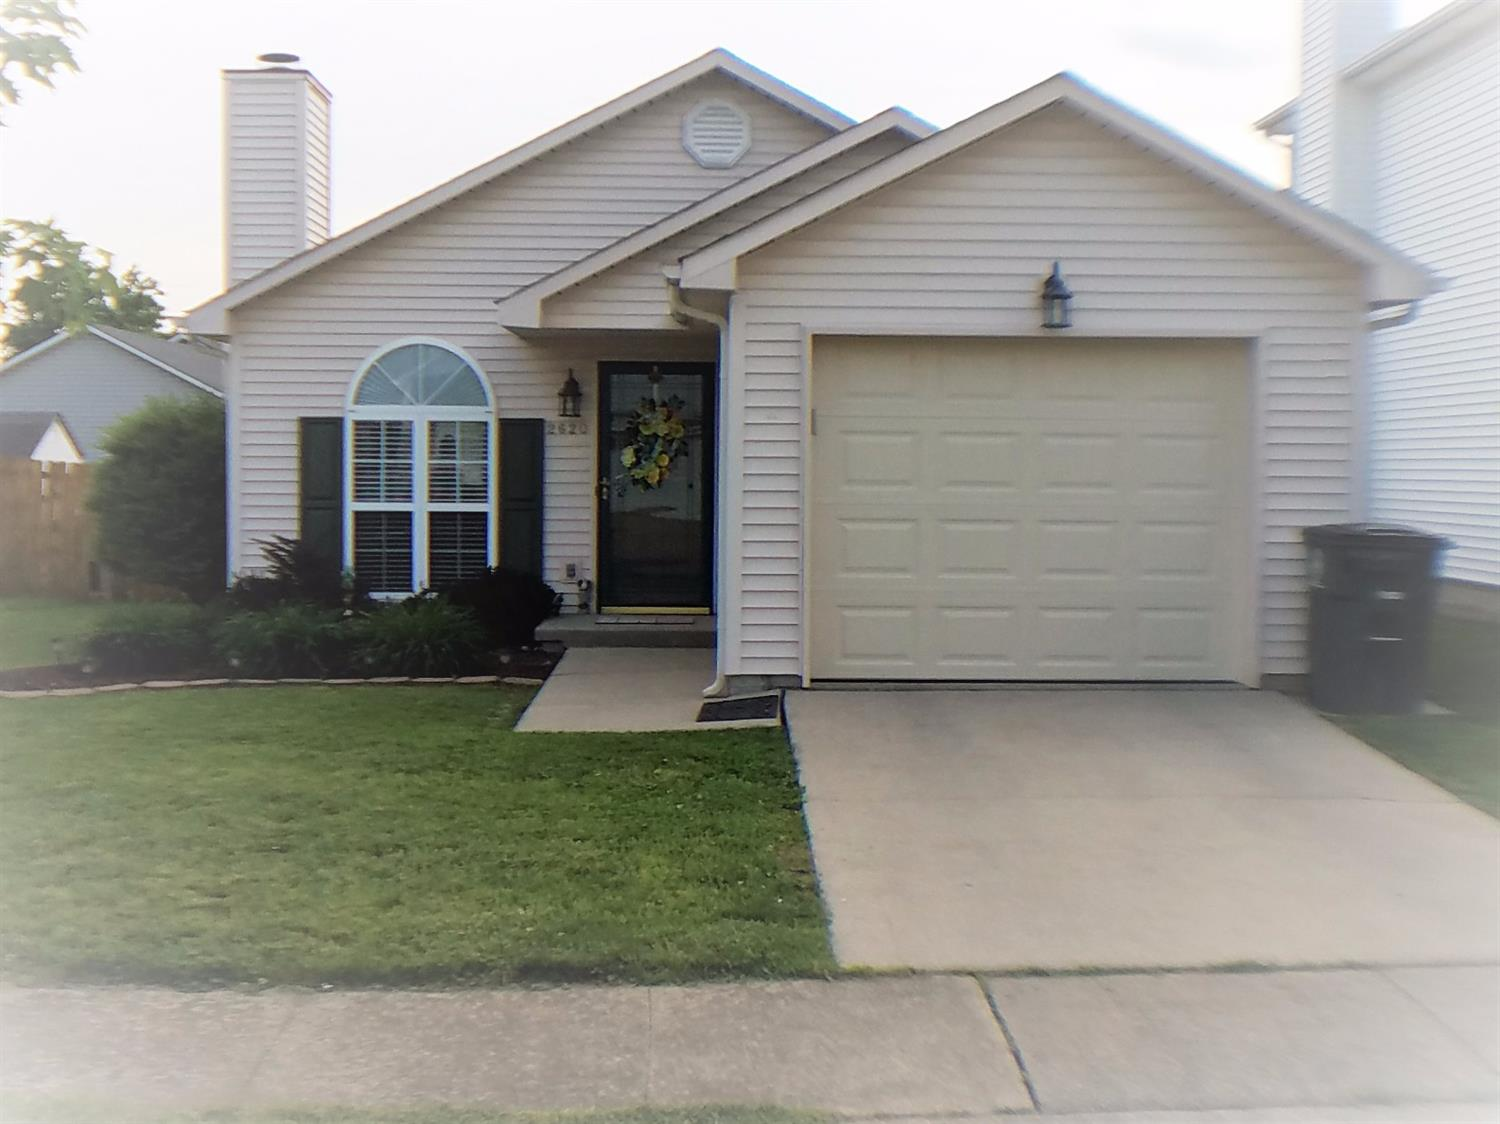 Home For Sale at 205 Haven Ct, Lexington, KY 40509